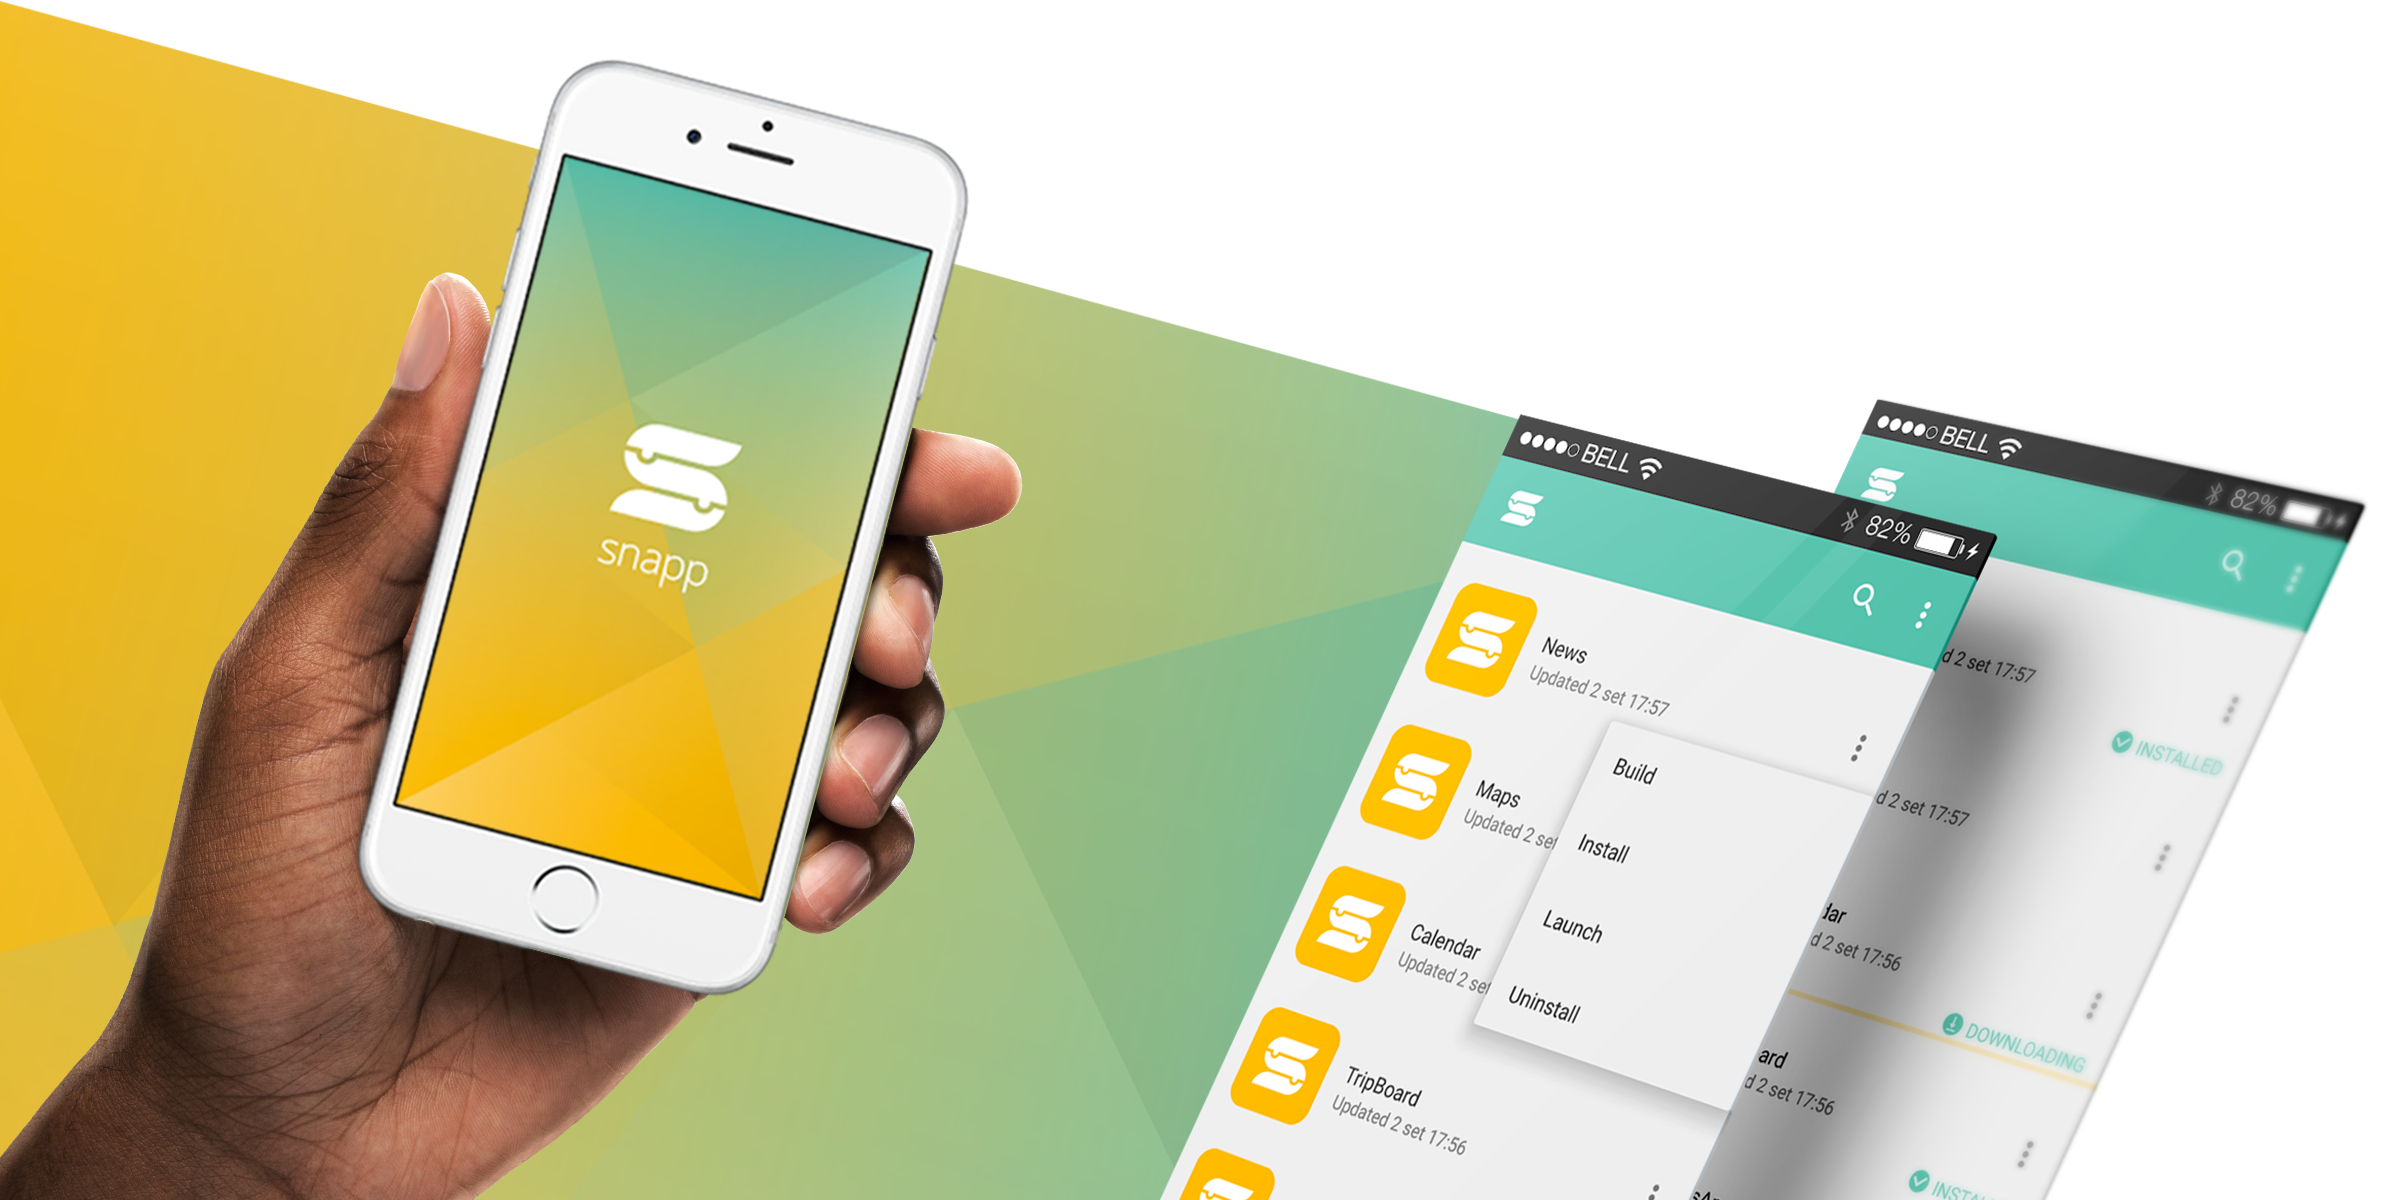 Companion app - Snapp companion is the mobile client you use in order to download the apps you create with the Snapp online editor tool.